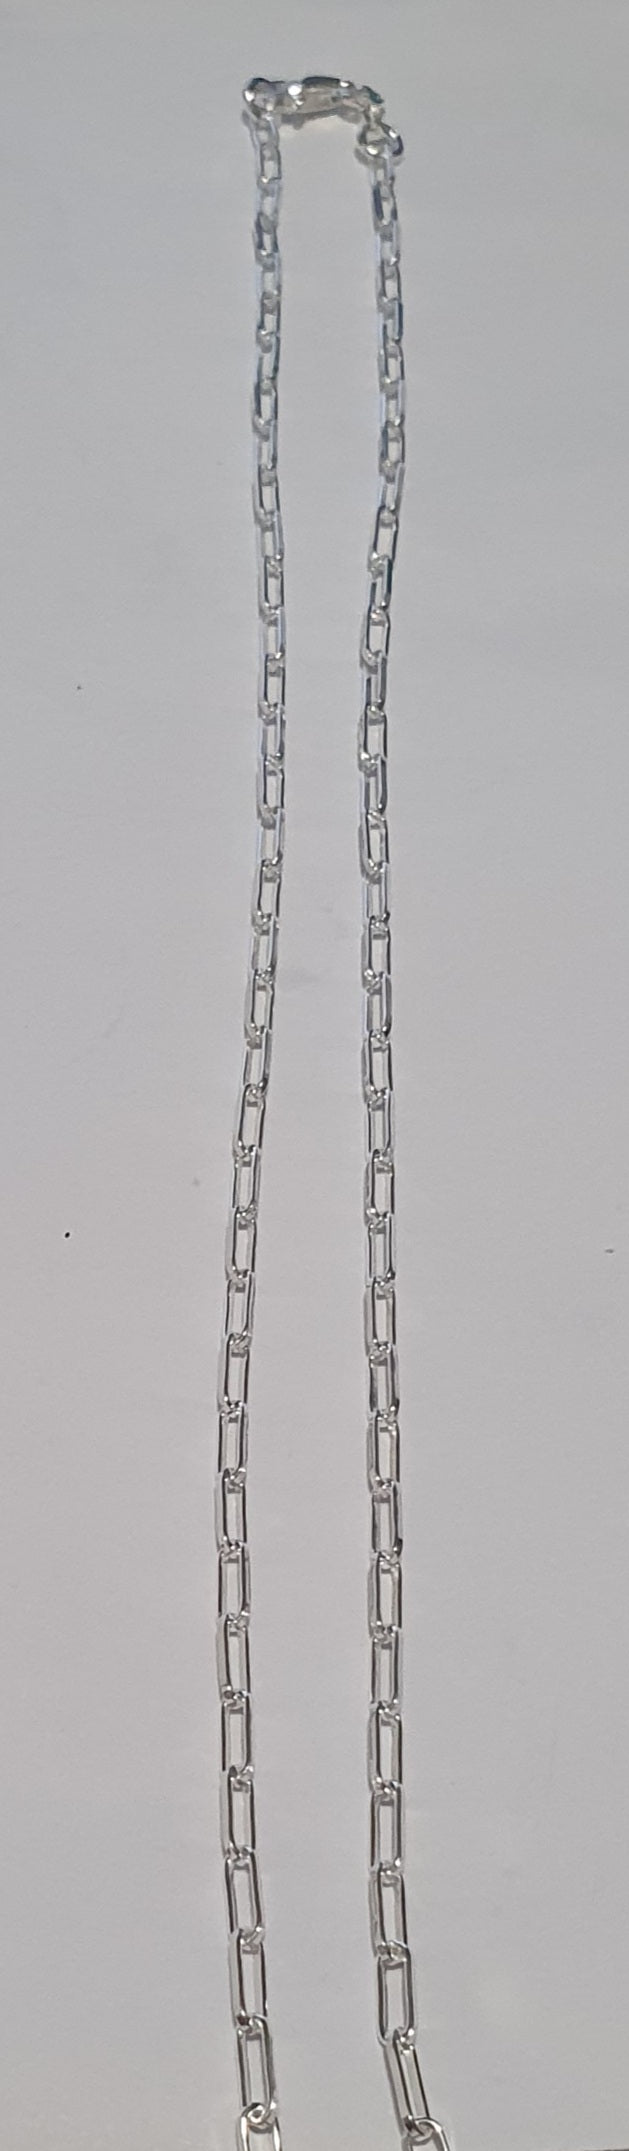 Thin paperclip chain